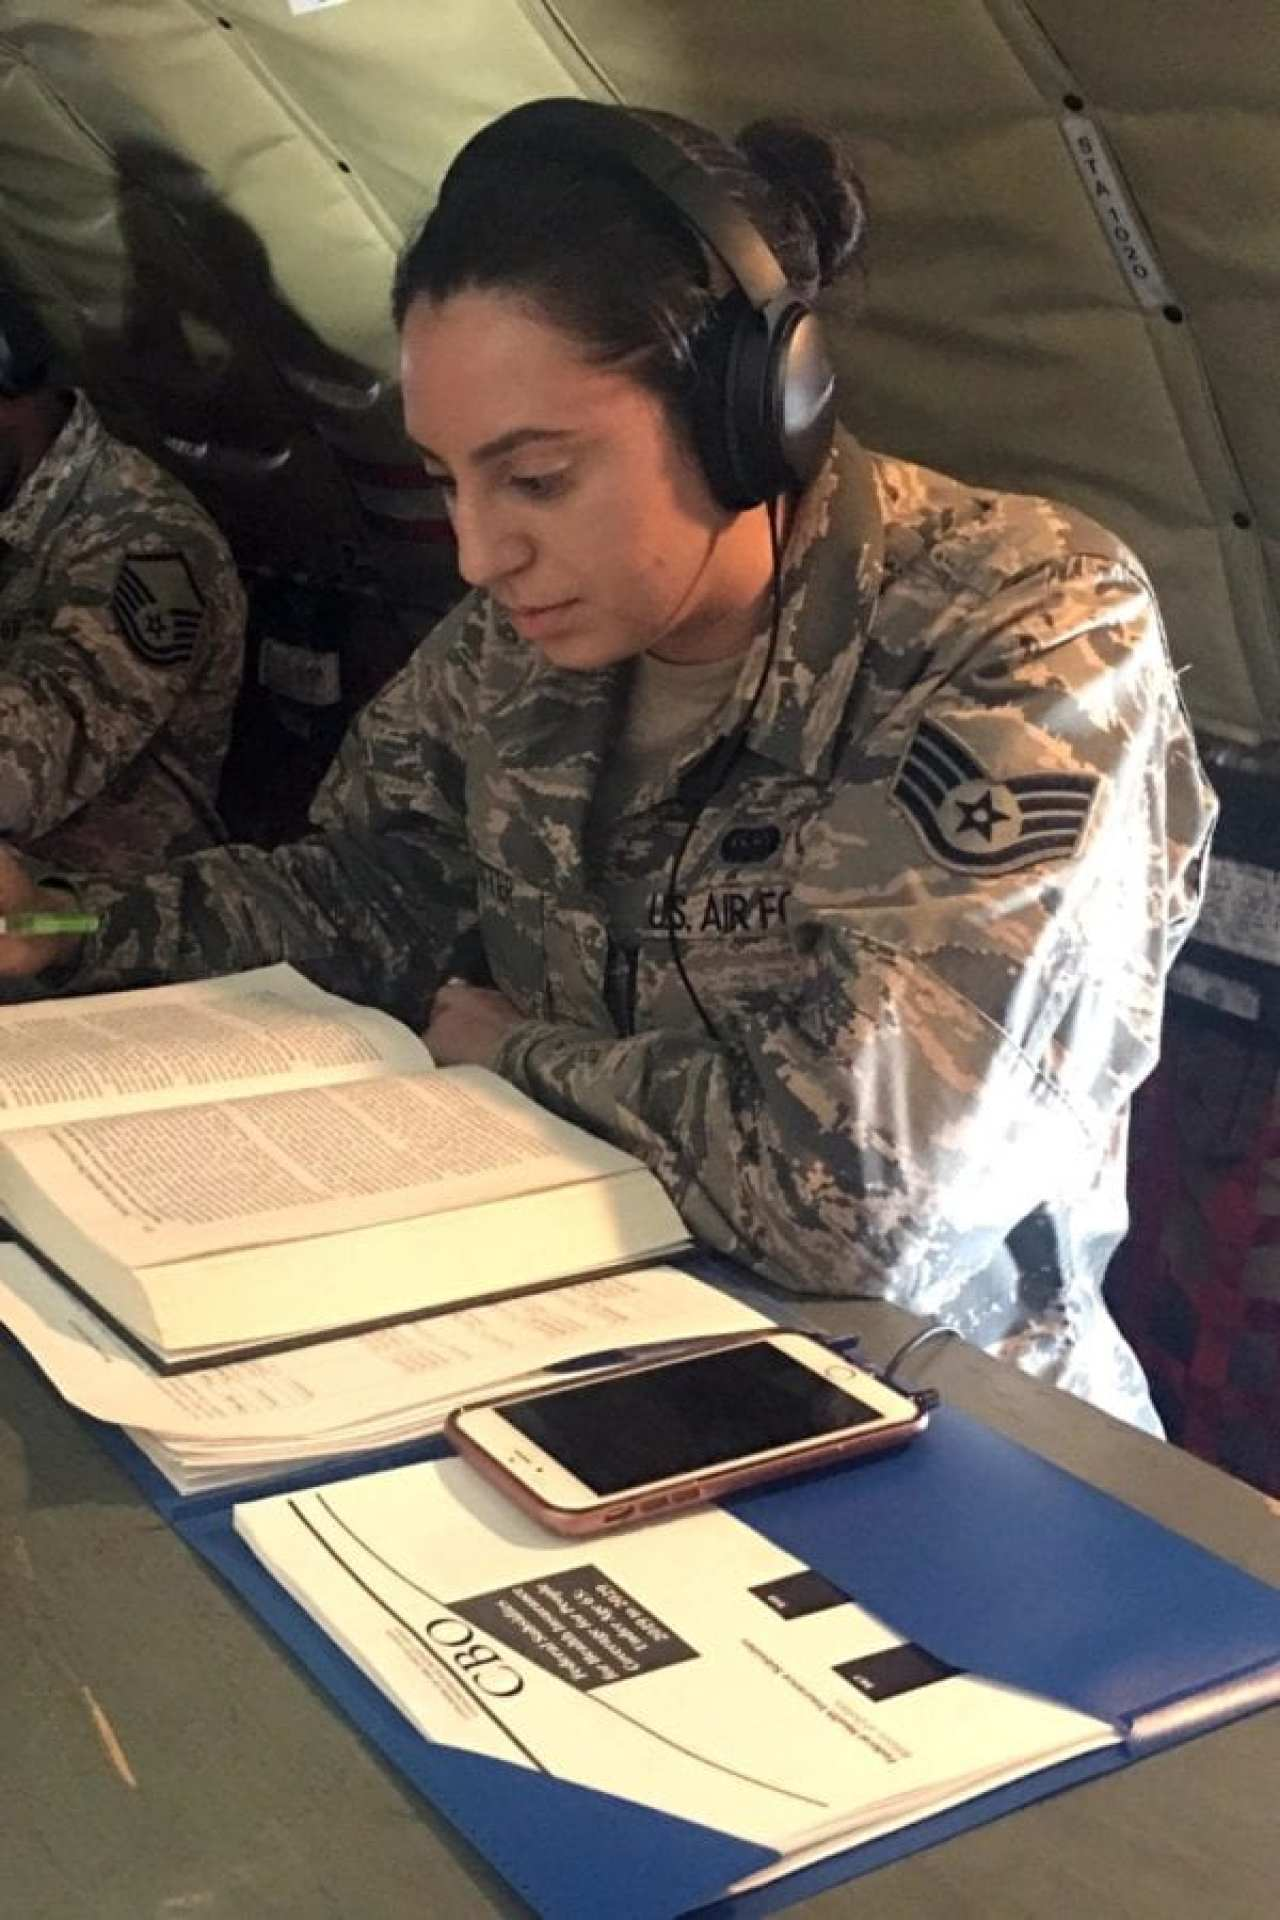 Senior Airman Jamie Foster, a member of the Michigan Air National Guard's 127th Wing and a second-year law student at the University of Michigan Law School, works on homework during a flight aboard a KC-135 Statotanker en route from Michigan to Alaska, Aug. 25, 2019. Foster is using her military educational benefits to pay for law school and then hopes to become a lawyer in the U.S. Air Force Judge Advocate General Corps. The Forever G.I. Bill expands eligibility to a wider group of service members, including National Guard members, and eliminates a pervious 15-year time limit on benefits.